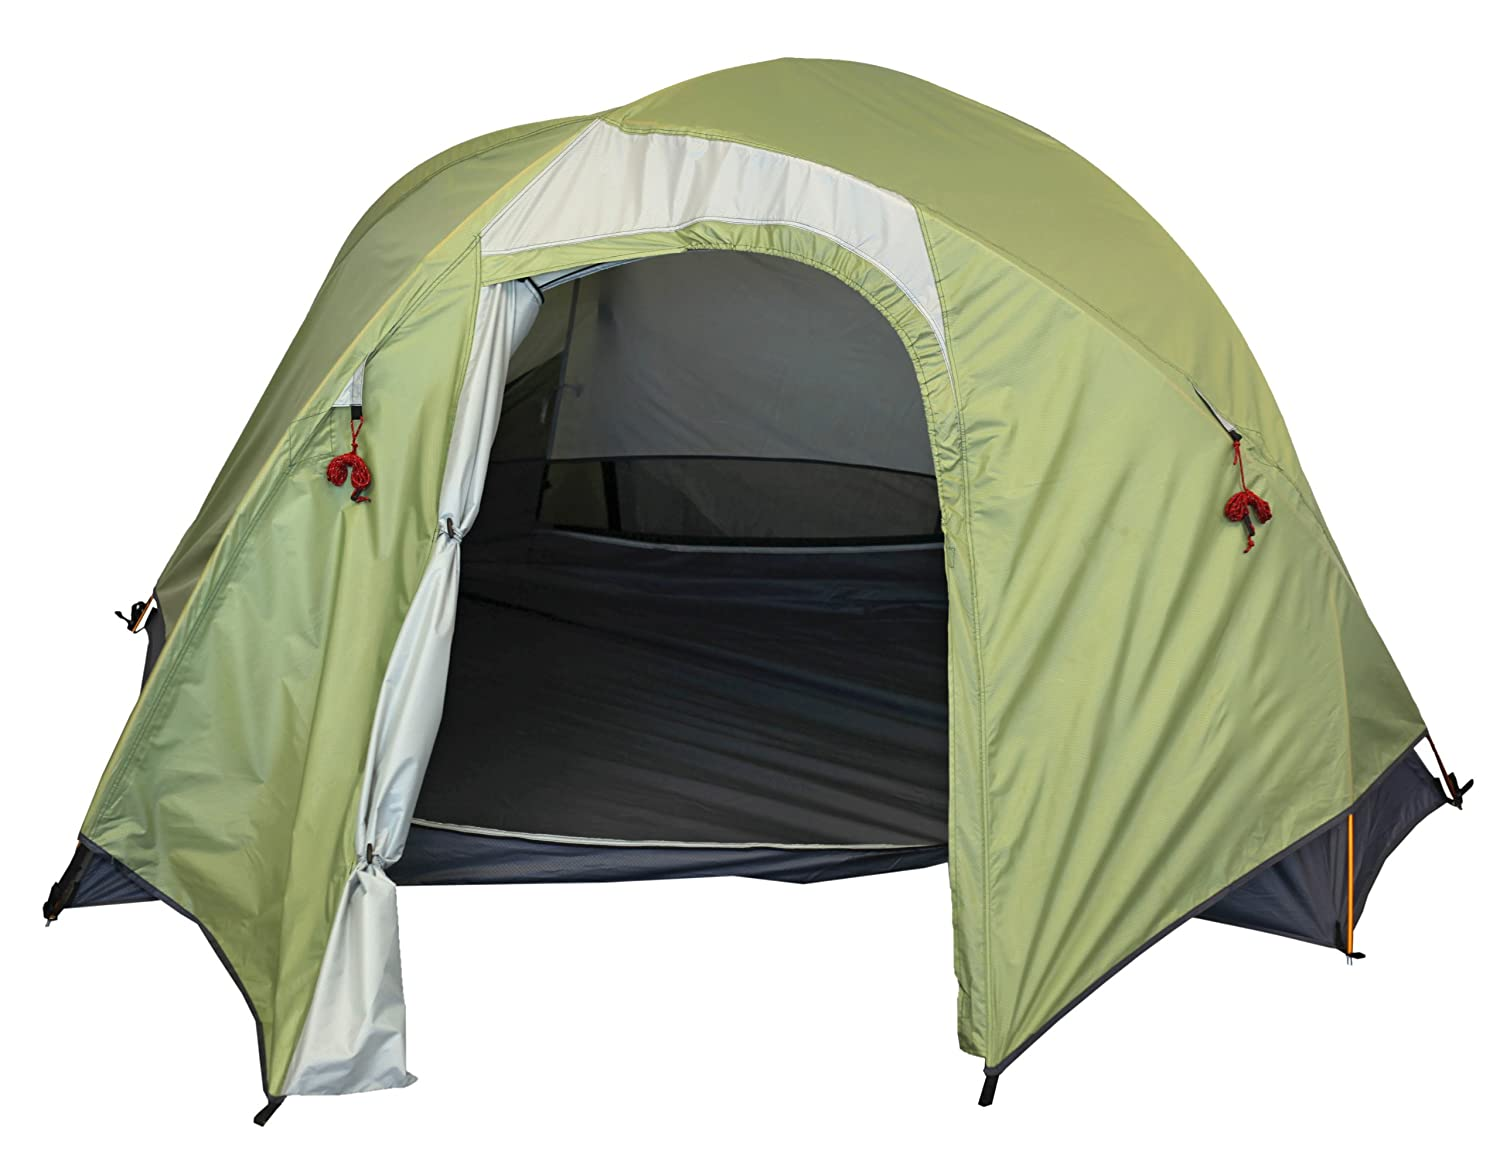 Amazon.com  Ledge Sports Recluse Lightweight 3 Person Tent (100 X 70 - 50-Inch Height 7.1-Pounds)  Expedition Tents  Sports u0026 Outdoors  sc 1 st  Amazon.com & Amazon.com : Ledge Sports Recluse Lightweight 3 Person Tent (100 X ...